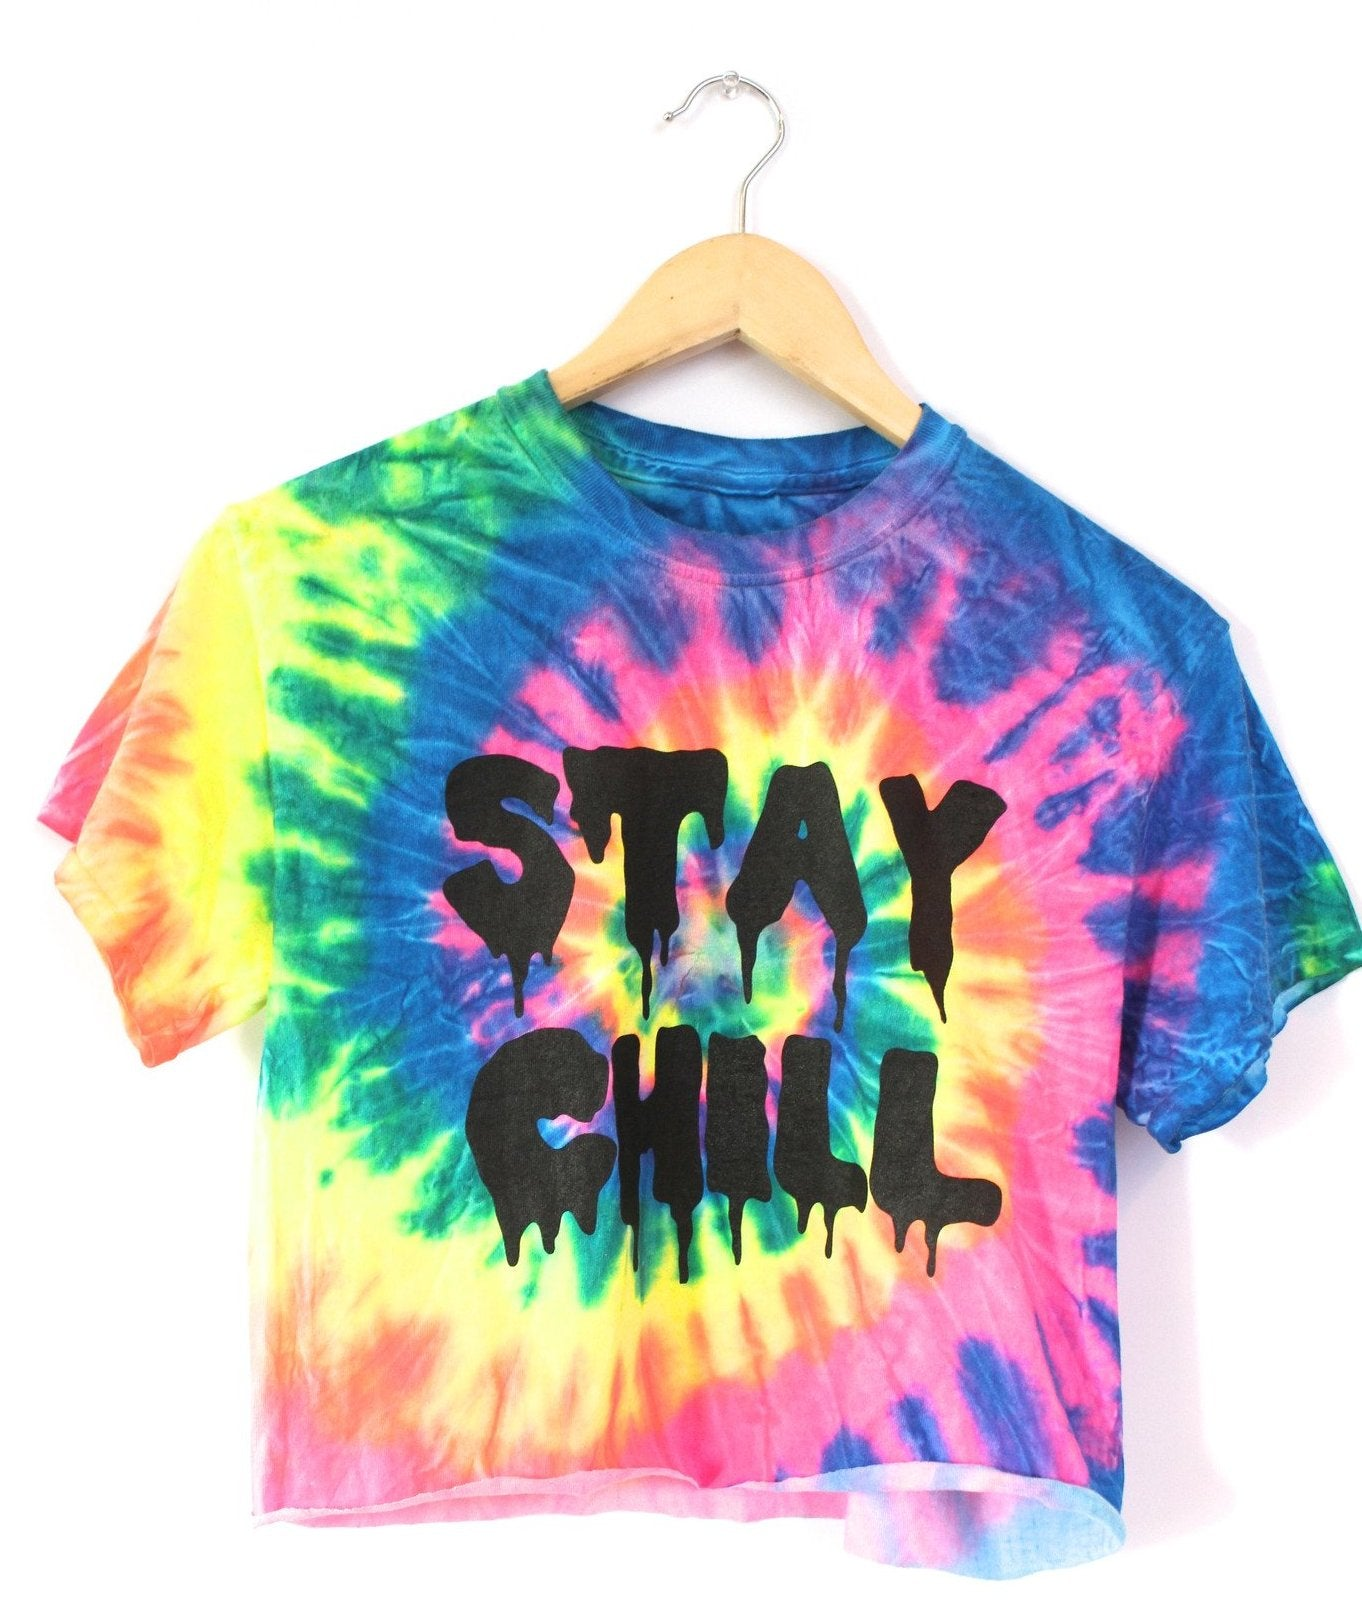 STAY CHILL Neon Rainbow Tie-Dye Graphic Crop Top